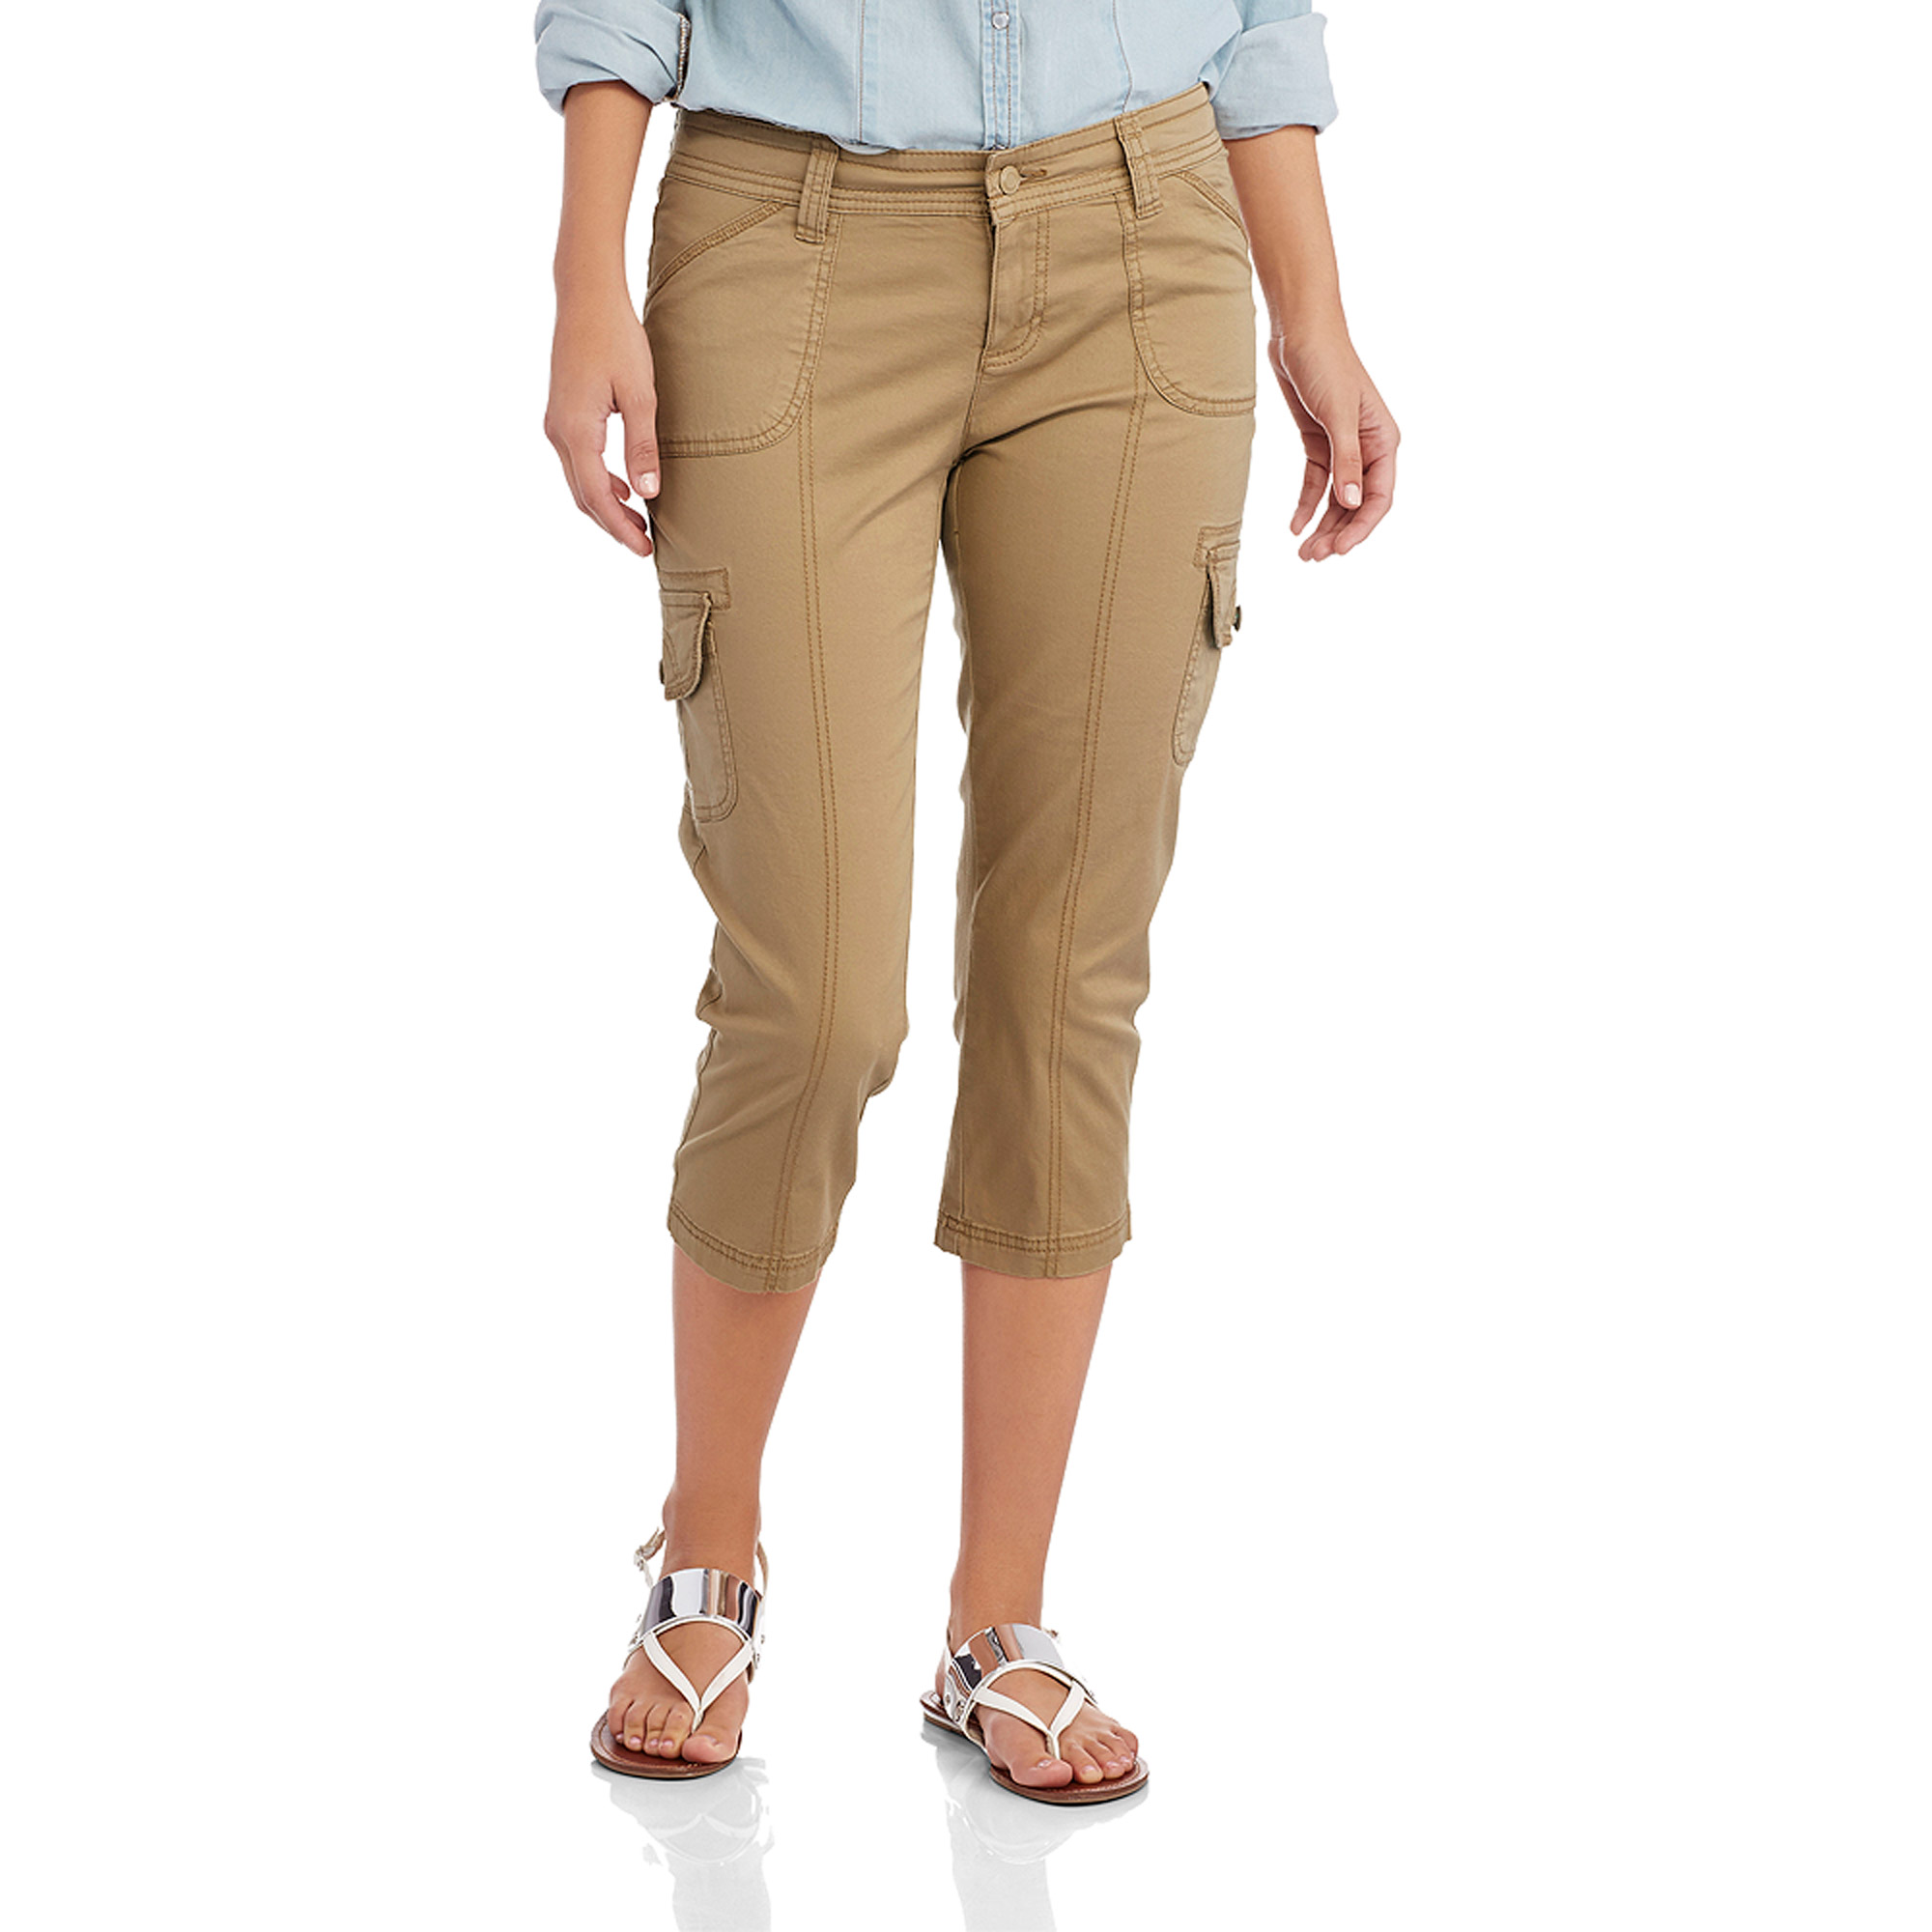 Faded Glory Women's Cargo Capri Pants - Walmart.com